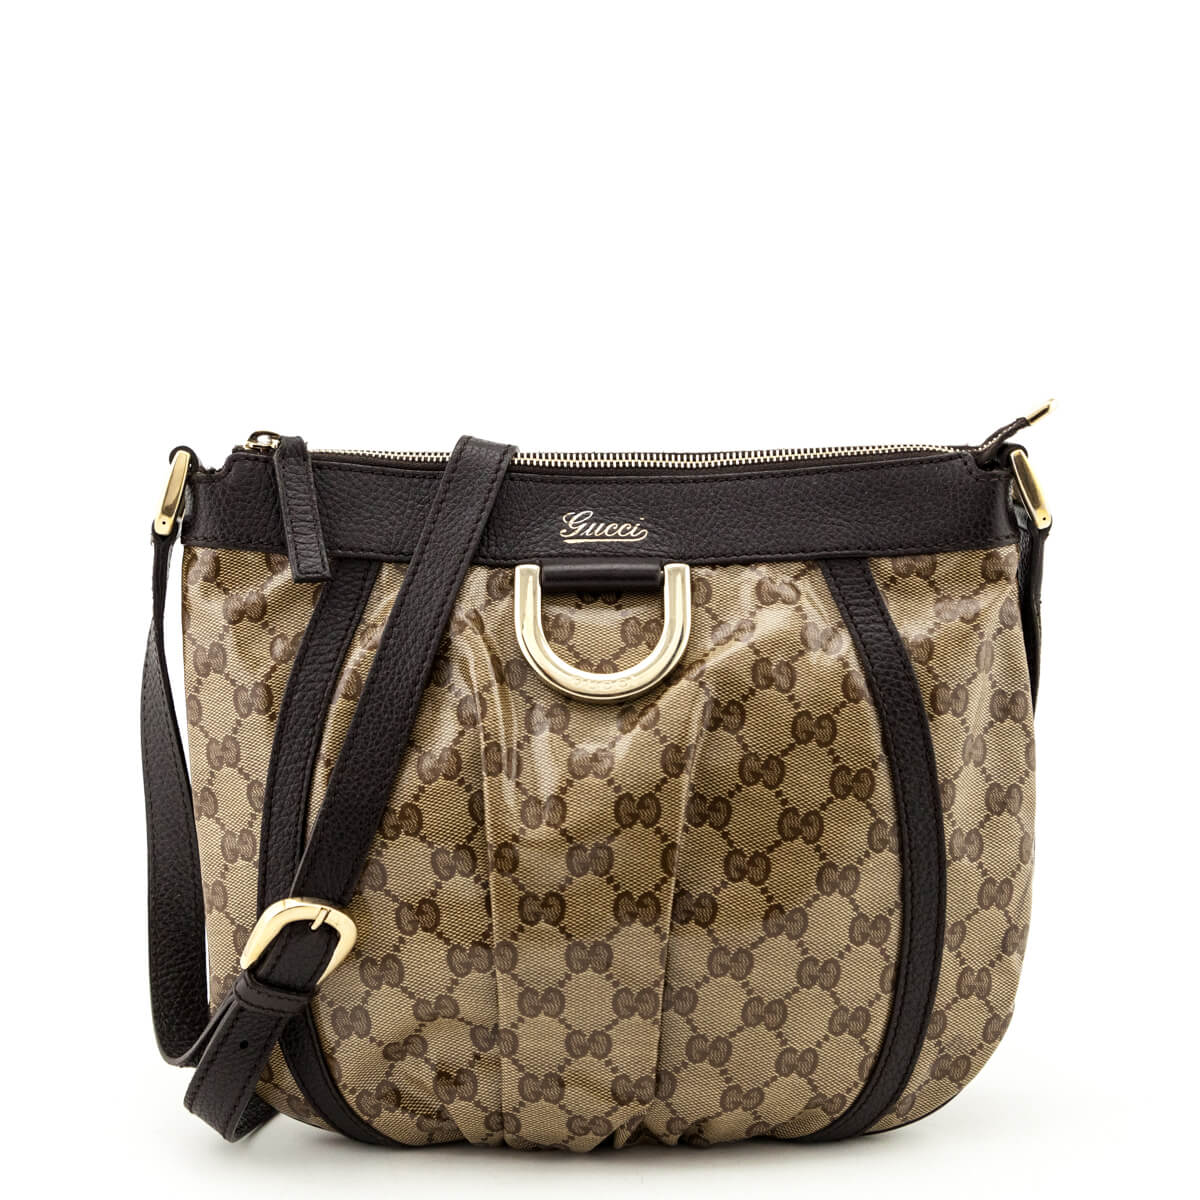 66d54c793 Gucci GG Crystal D-Ring Crossbody Bag - LOVE that BAG - Preowned Authentic  Designer ...